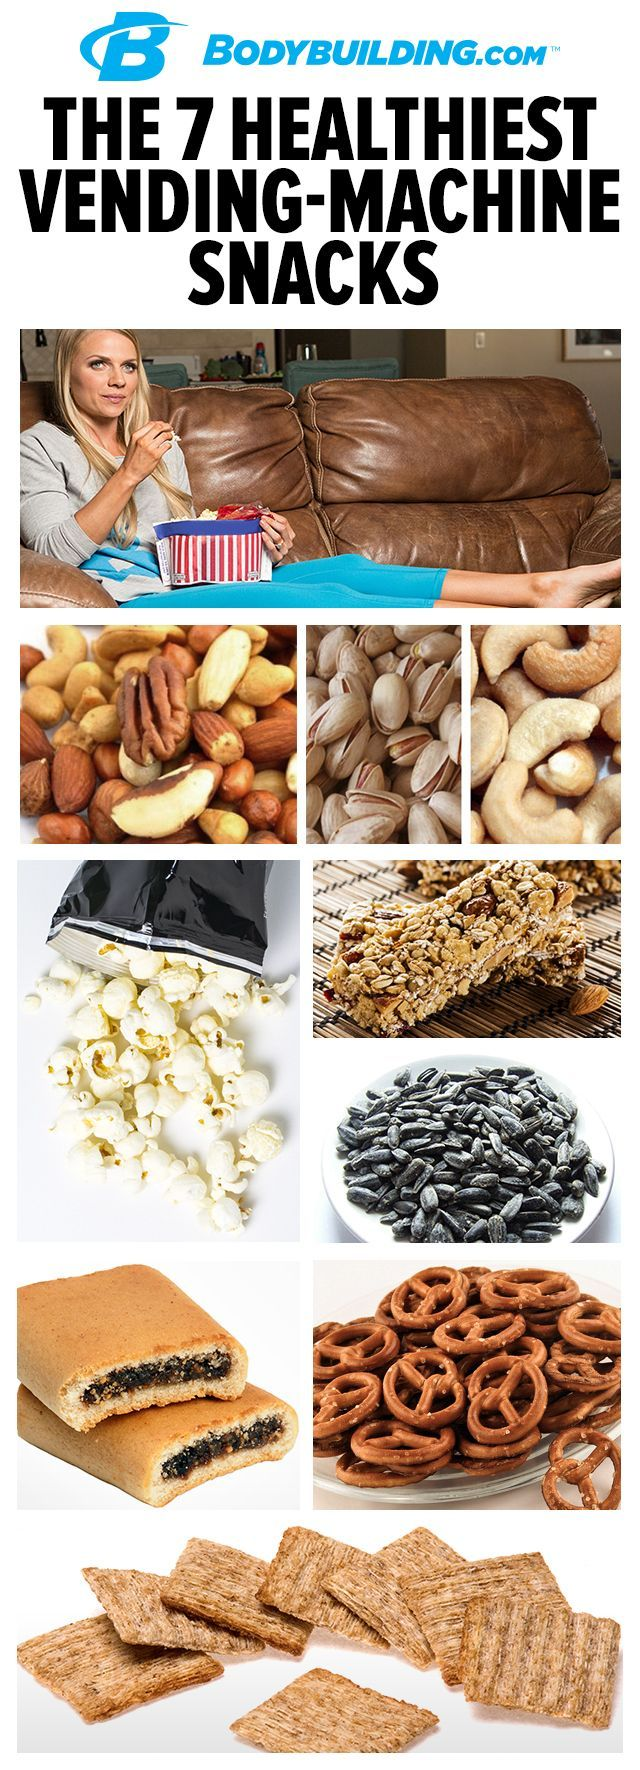 7 Healthiest Vending-Machine Snacks. When a snack attack strikes, our picks for the healthiest machine cuisine are less hazardous to your hard-earned physique—if you can resist all the junk.